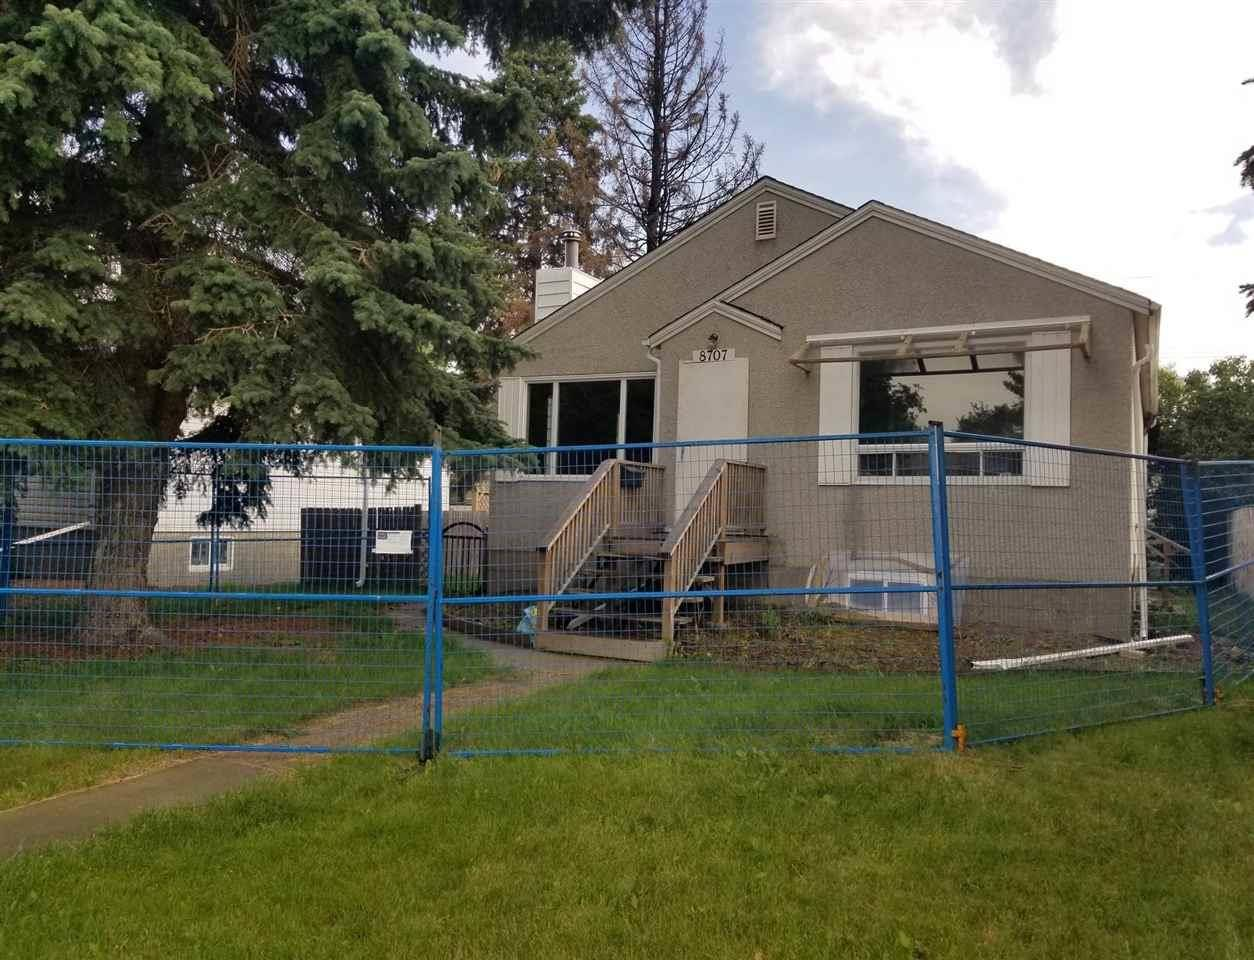 House for sale at 8707 89 Ave Nw Edmonton Alberta - MLS: E4172140